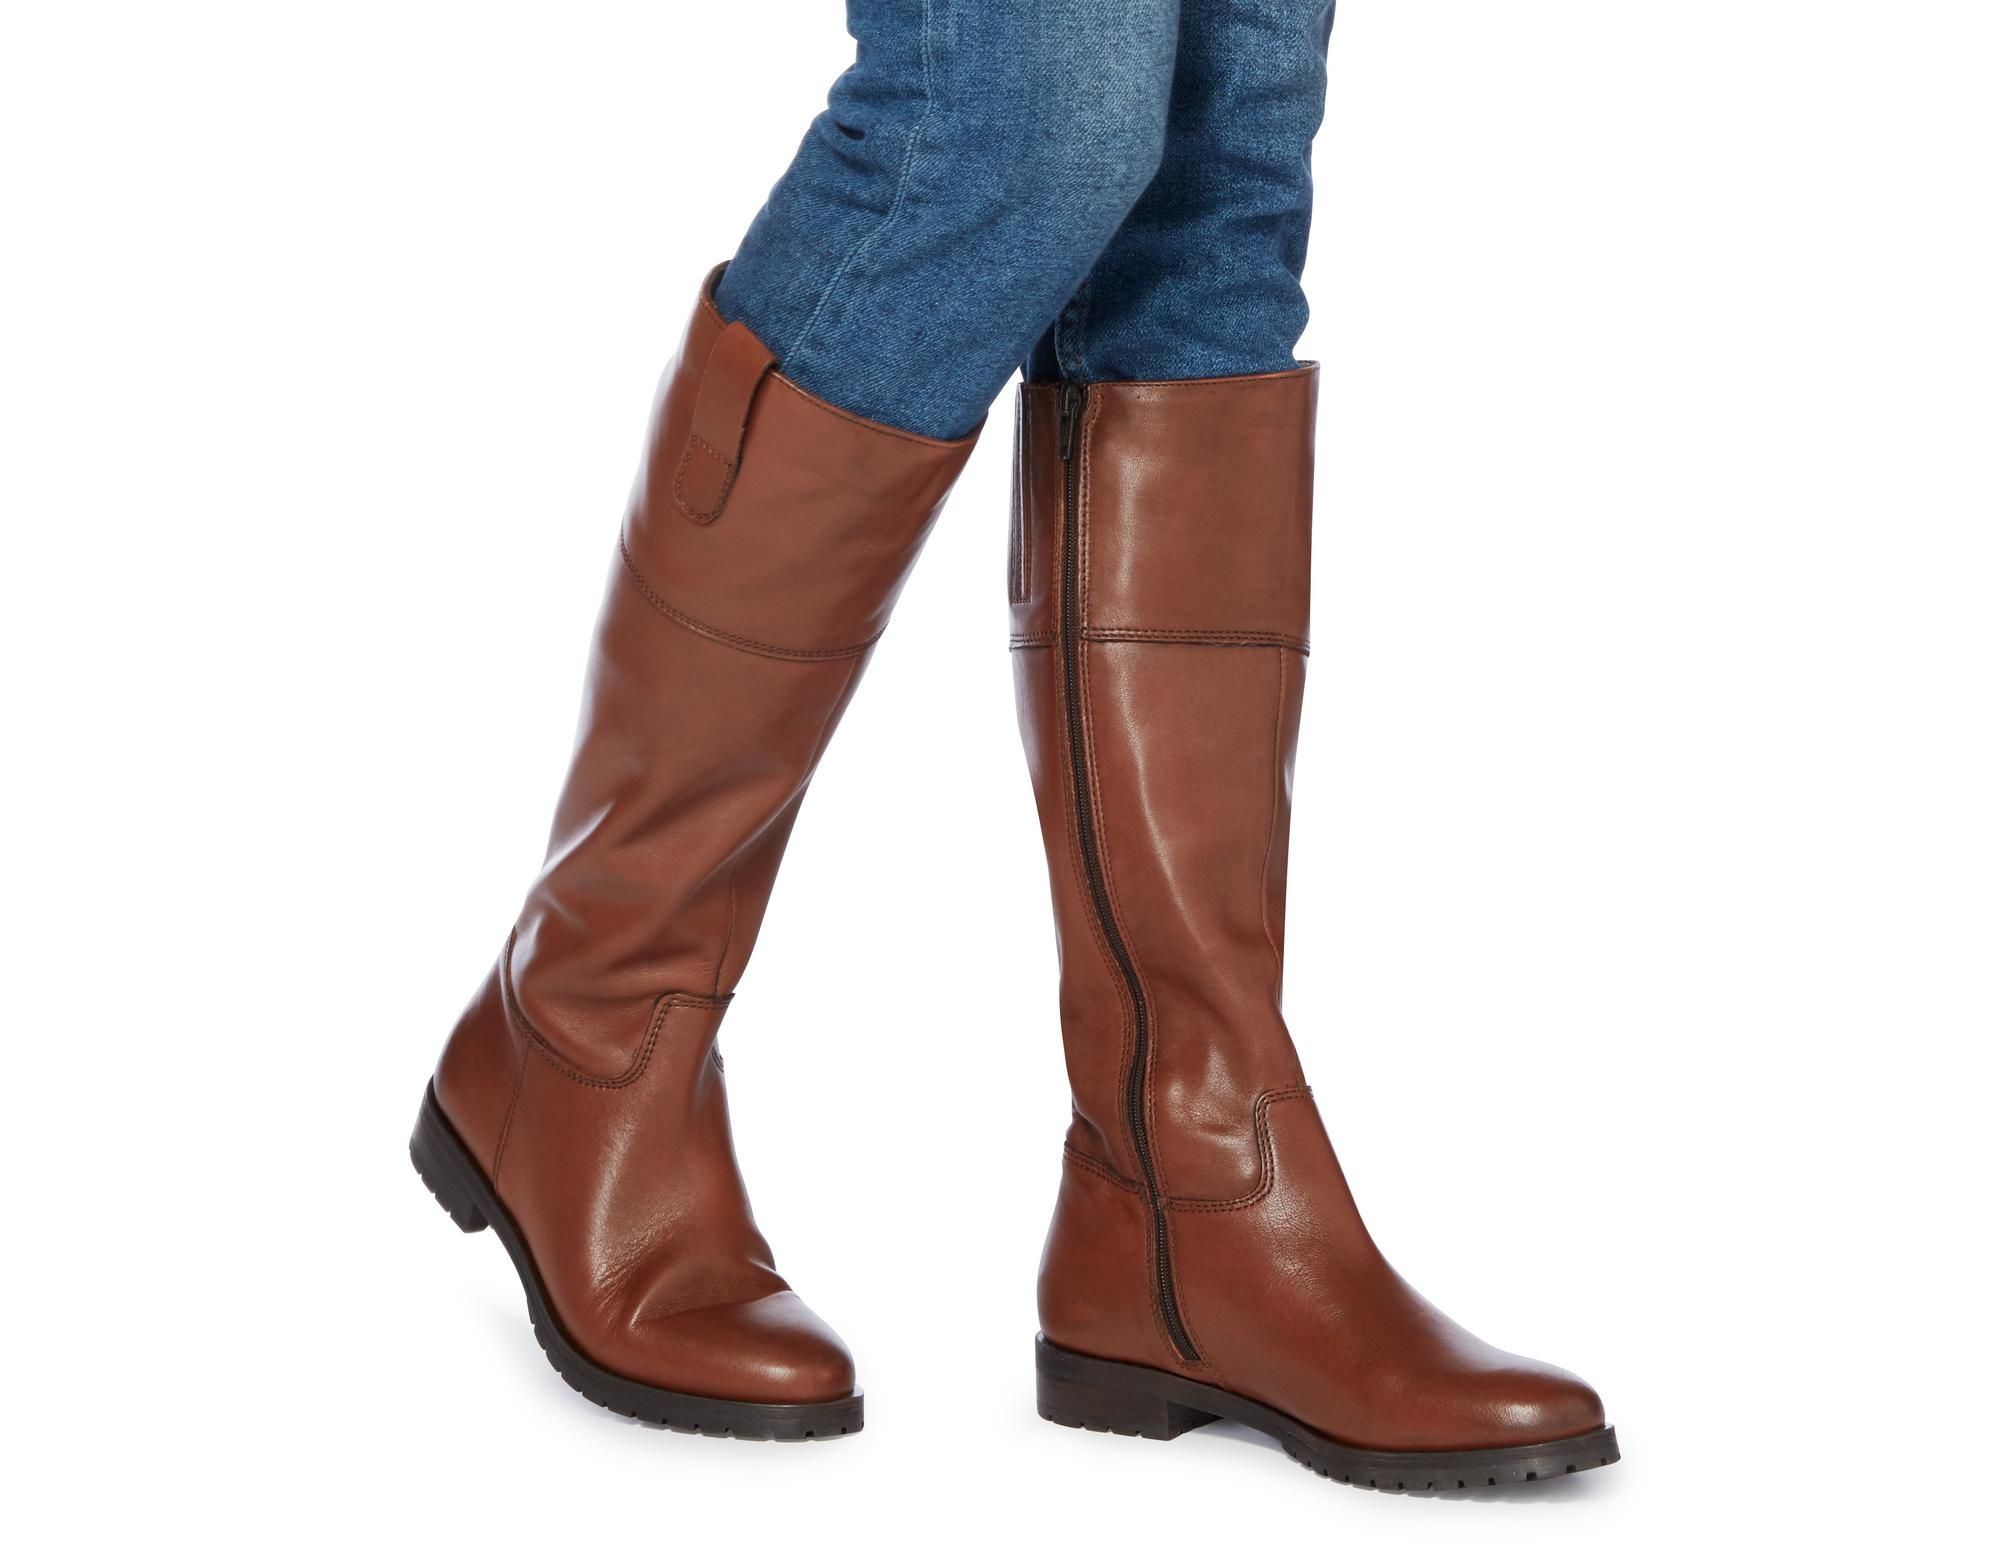 TIMI Side Tab Leather Riding Boot (With images) Riding